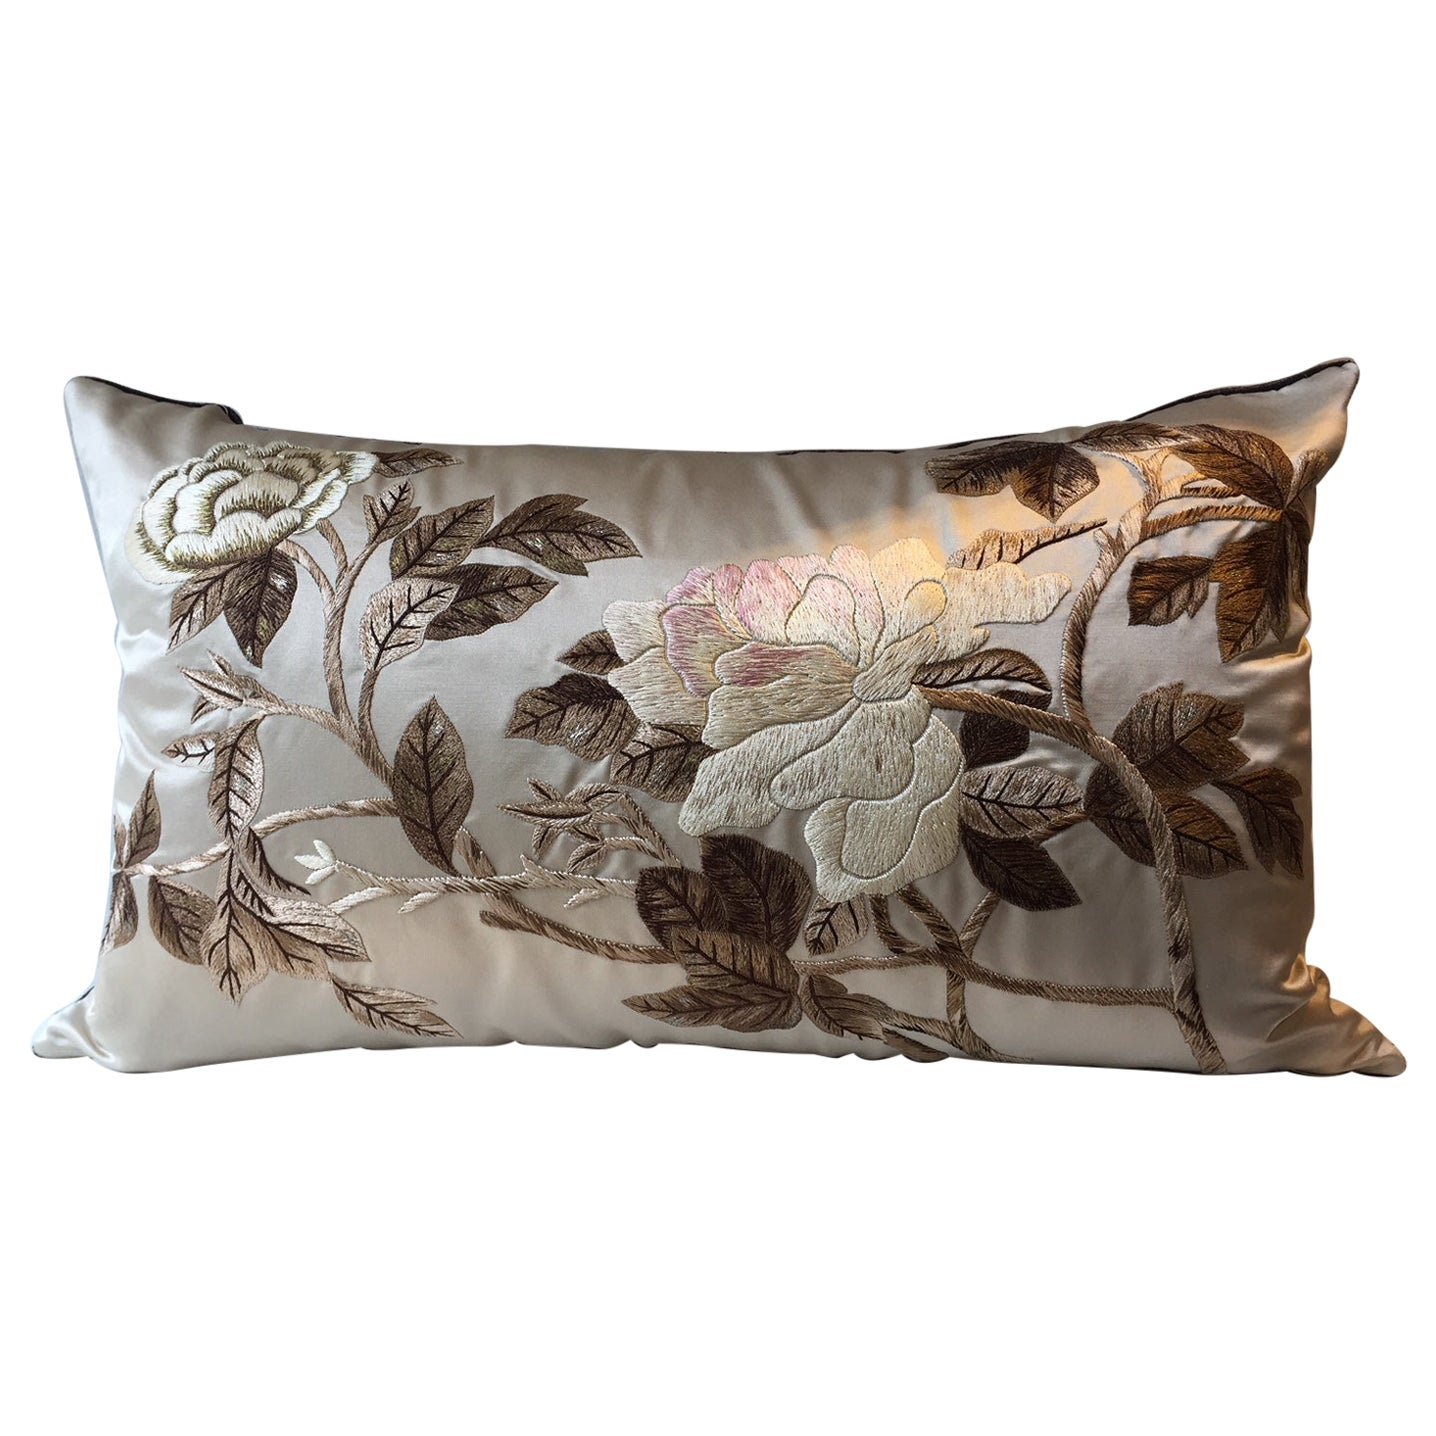 Decorative Silk Cushion with Hand Embroidered Peony Design